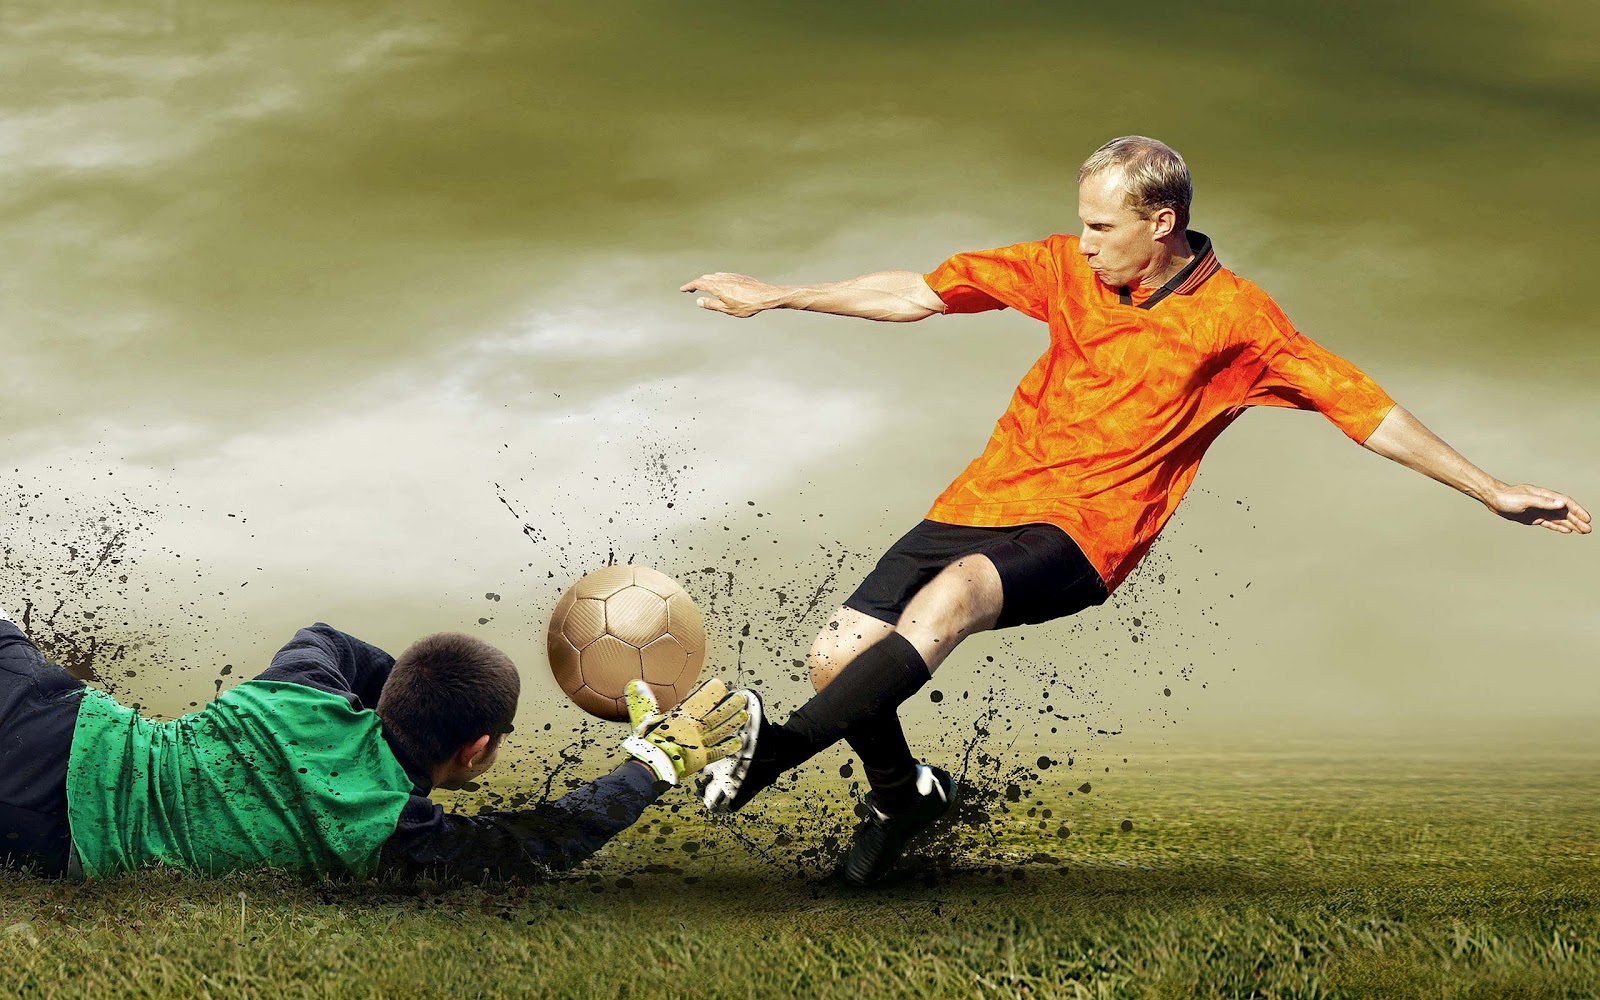 Soccer Players Wallpapers Wallpapers of Soccer Players 1600x1000